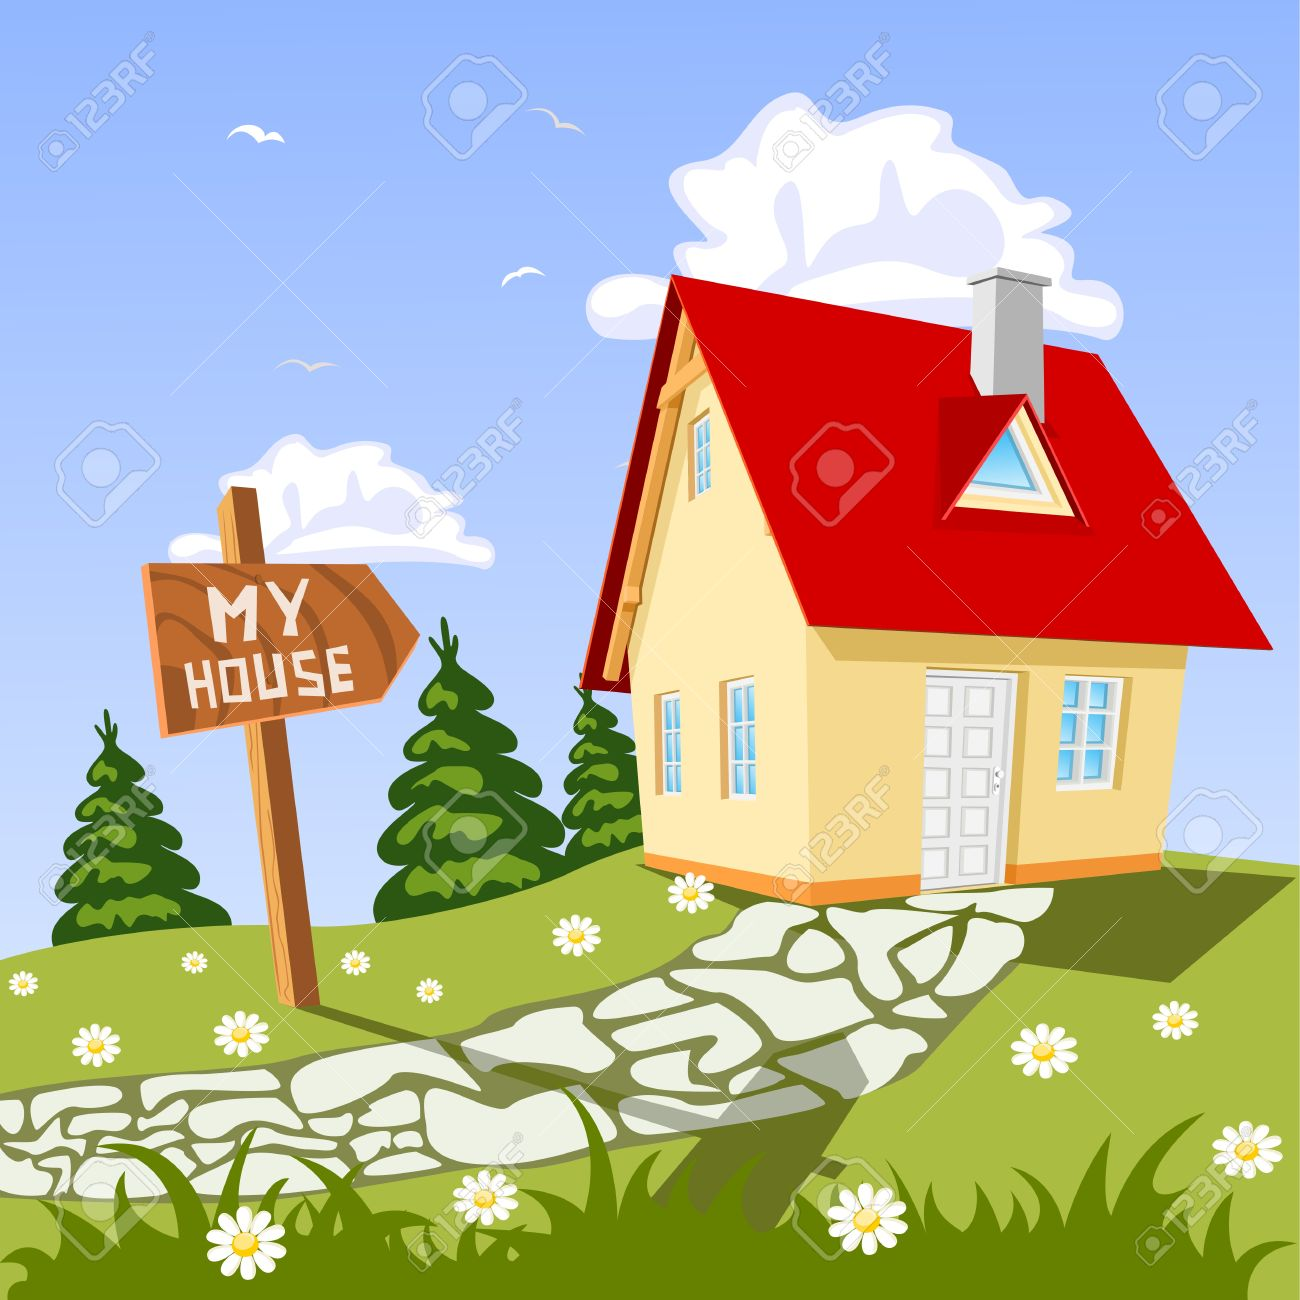 My house in the countryside Stock Vector - 16235659